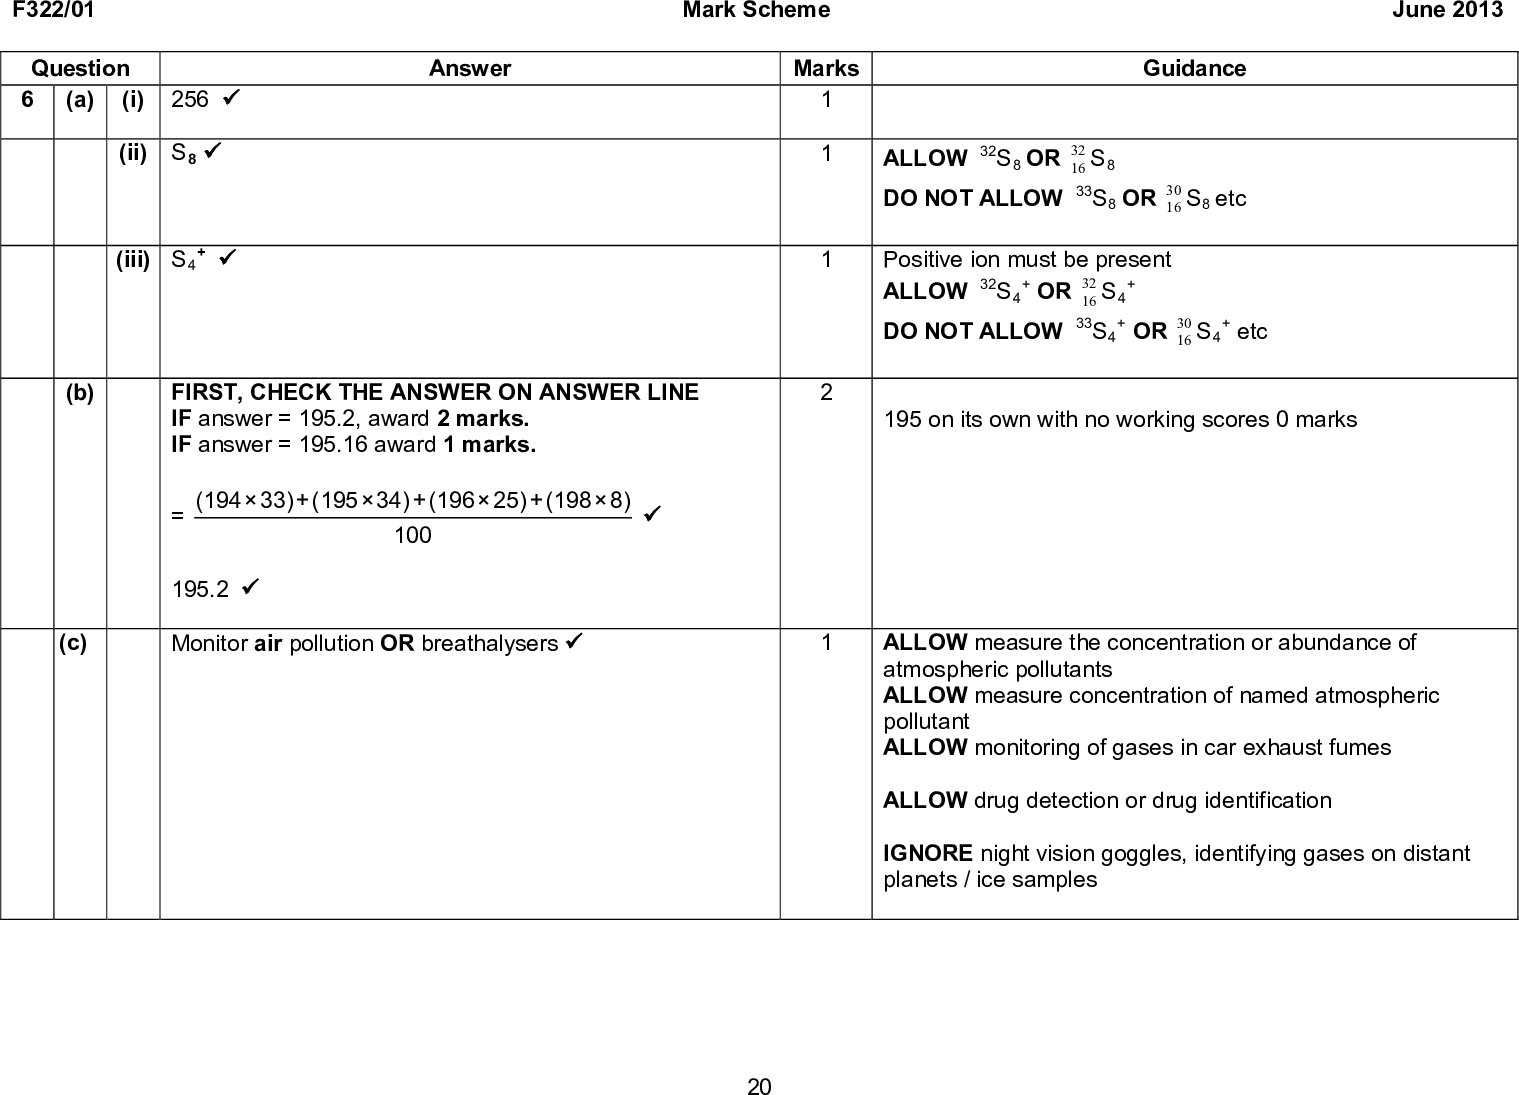 F322/01 Mark Scheme June 2013 Answer Marks Question 6 (a) (i) 256 (cid:57) (ii) S8 (cid:57) (iii) S4 + (cid:57) (b) FIRST, CHECK THE ANSWER ON ANSWER LINE IF answer = 195.2, award 2 marks. IF answer = 195.16 award 1 marks. = (19433)+(19534)+(19625)+(1988) 195.2 (cid:57) Monitor air pollution OR breathalysers (cid:57) 100 (cid:57) (c) Guidance 16 S8 OR 32 16 S8 etc ALLOW 32S8 OR 32 DO NOT ALLOW 33S8 OR 30 Positive ion must be present ALLOW 32S4 16 S4 DO NOT ALLOW 33S4 + 195 on its own with no working scores 0 marks OR 30 16 S4 etc ALLOW measure the concentration or abundance of atmospheric pollutants ALLOW measure concentration of named atmospheric pollutant ALLOW monitoring of gases in car exhaust fumes ALLOW drug detection or drug identification IGNORE night vision goggles, identifying gases on distant planets / ice samples 20<br />  F322/01 Mark Scheme June 2013 Question 6 (d) Answer : 11.1 1.0 OR 5.56 :11.1 : 1.39 (cid:57) mole ratio C : H : O : 22.2 66.7 12.0 16.0 4 : 8 : 1 OR C4H8O (cid:57) contains a C=O or carbonyl because of absorbance at about 1710 cm1 (cid:57) Any two from: Marks Guidance PLEASE LOOK AT THE SPECTRA AND ABOVE THE SPECTRA FOR POSSIBLE ANSWERS ALLOW two marks for 72 x 66.7/100 = 48/12 = 4 (C) 72 x 11.1/100 = 8 = 8 (H) 72 x 22.2/100 = 16 = 1 (O) ALLOW C=O or carbonyl since has absorbance within the range 1640 to 1750 cm1 ALLOW ketone OR aldehyde linked to correct absorbance ALLOW could be aldehyde, ketone, carboxylic acid, ester (or amide) because of absorbance between range 1640 to 1750 cm1 (ie direct quote from the data book) DO NOT ALLOW reference to M being a carboxylic acid, ester or amide unless they are included in a list with aldehyde/ketone in which case IGNORE carboxylic acid/ester/amide IGNORE reference to CO / absence of OH DO NOT ALLOW has OH ALLOW correct structural OR displayed OR skeletal formula OR mixture of the above (as long as unambiguous) eg CH3CH2CH2CHO, CH3COCH2CH3 OR (CH3)2CHCHO DO NOT ALLOW C3H7CHO IGNORE incorrect na